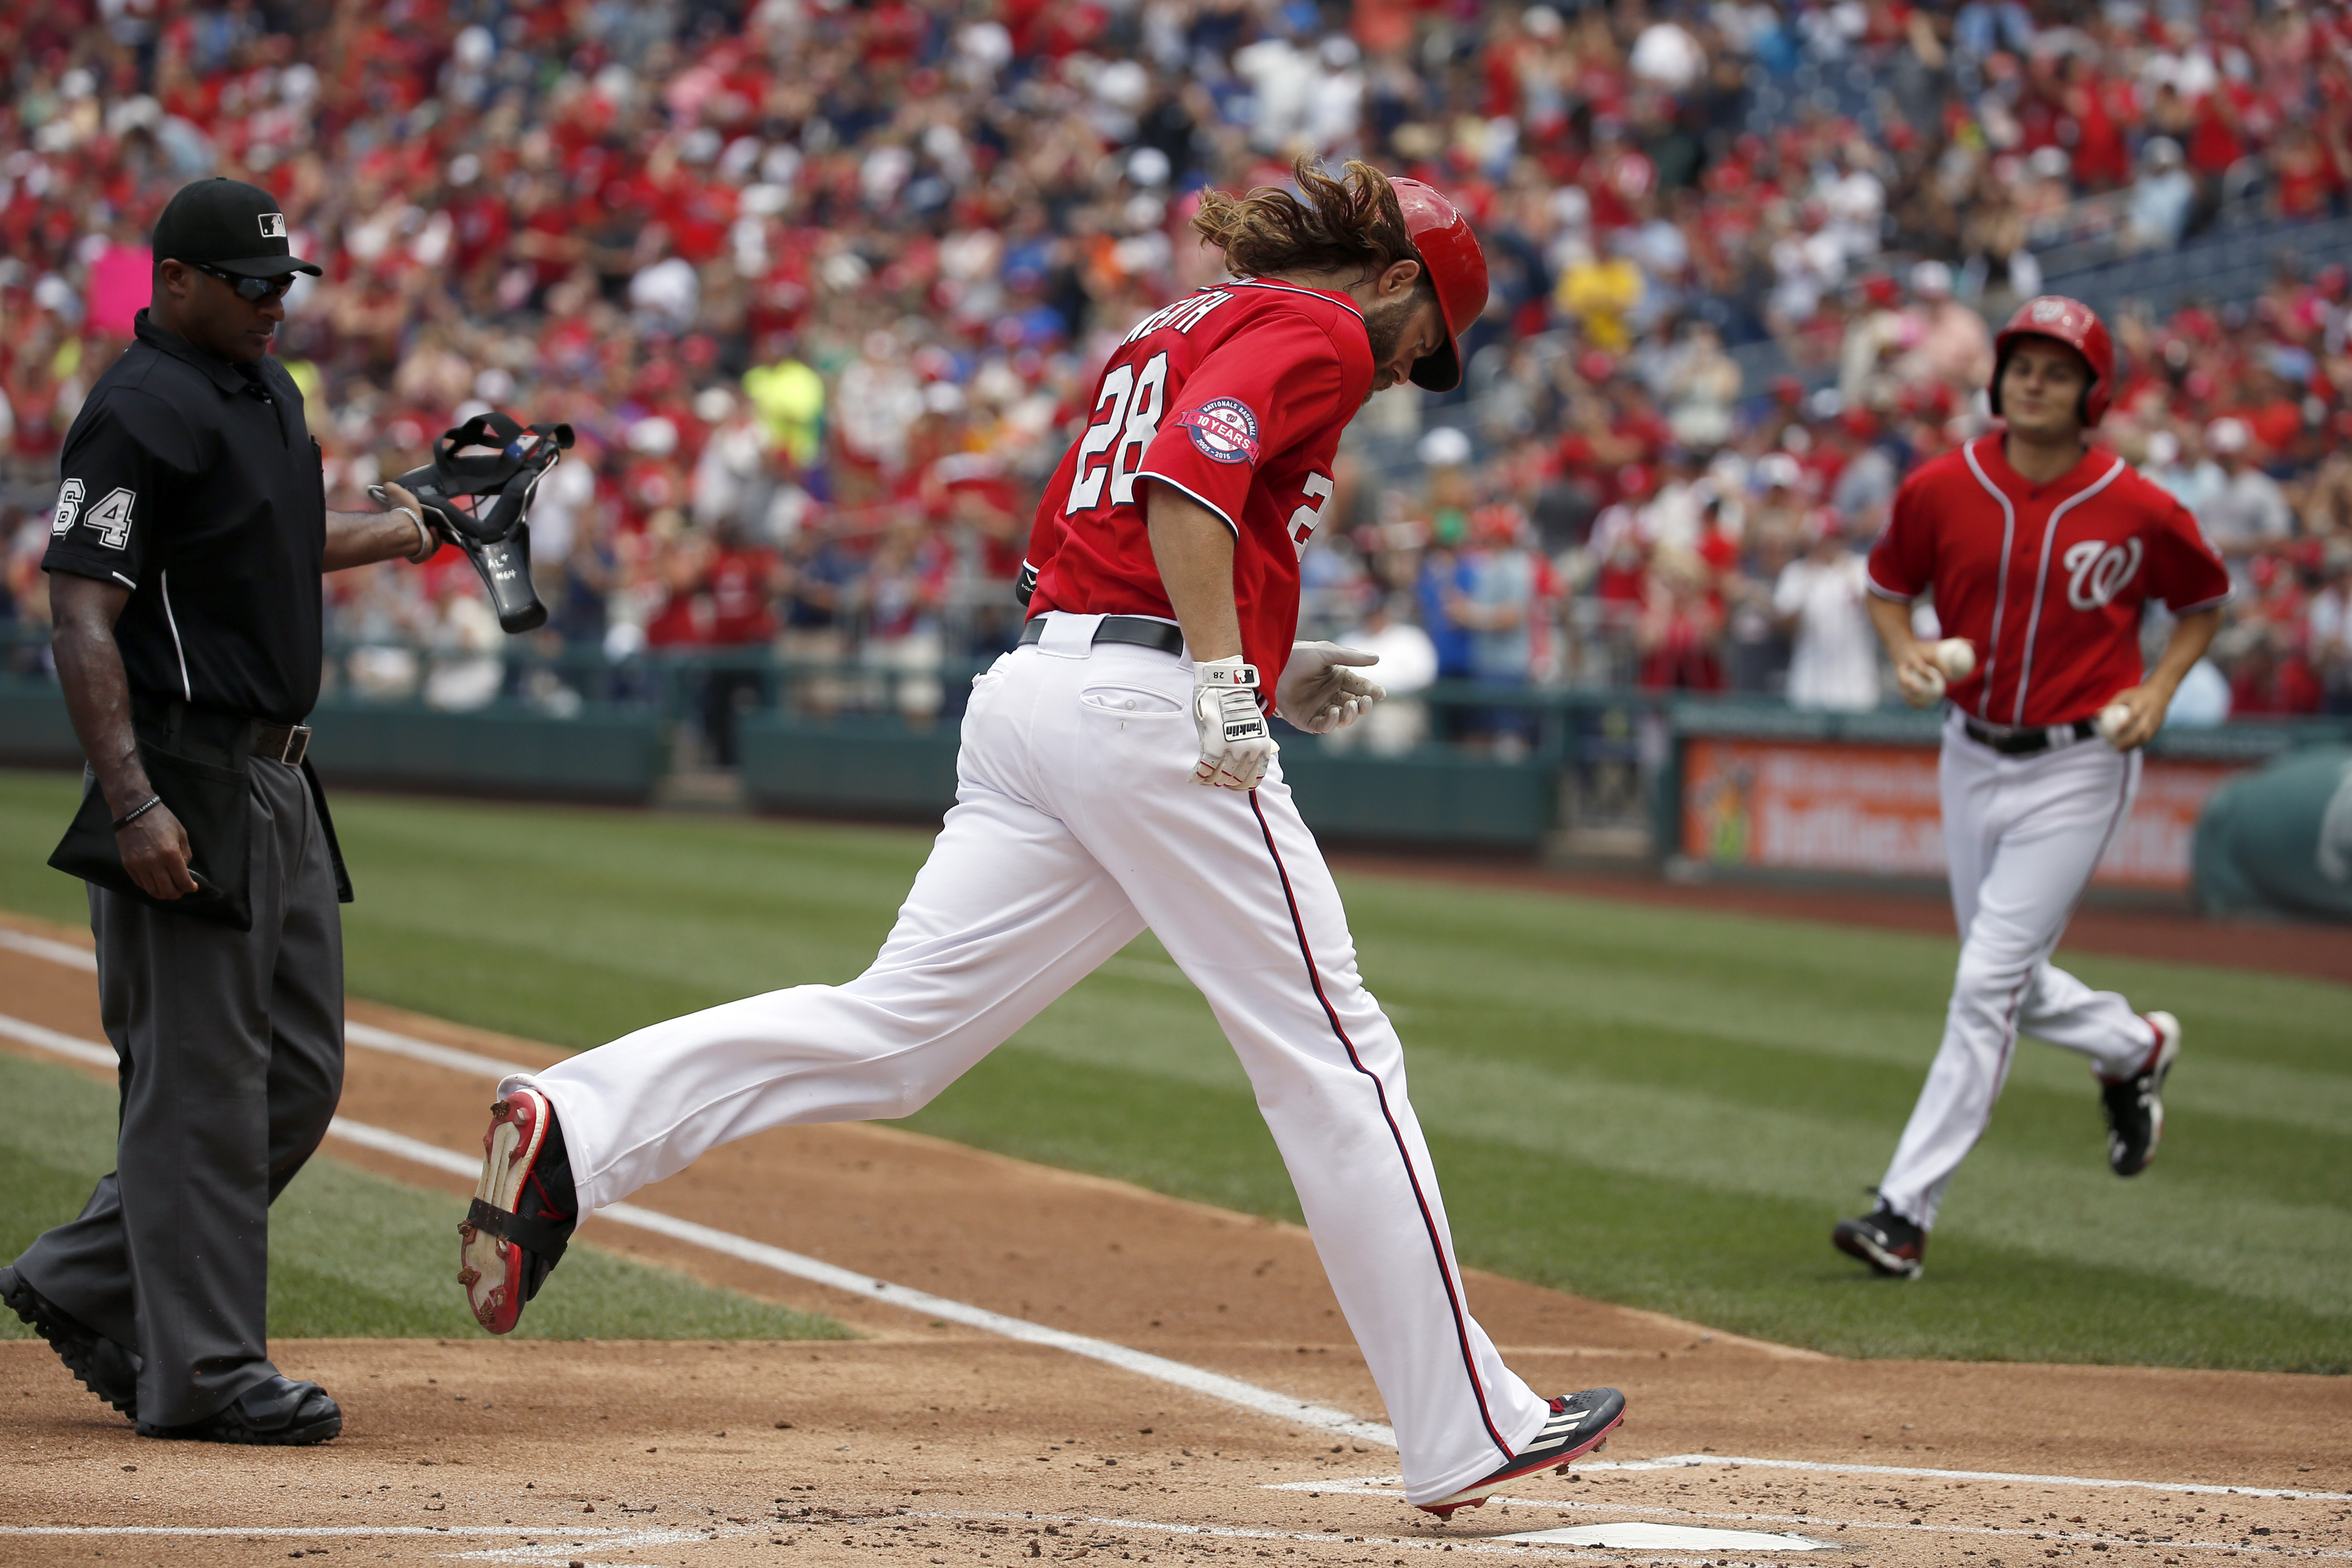 Washington Nationals' Jayson Werth (28) steps on home plate for his solo home run during the second inning of a baseball game against the Colorado Rockies at Nationals Park, Sunday, Aug. 9, 2015, in Washington. (AP Photo/Alex Brandon)